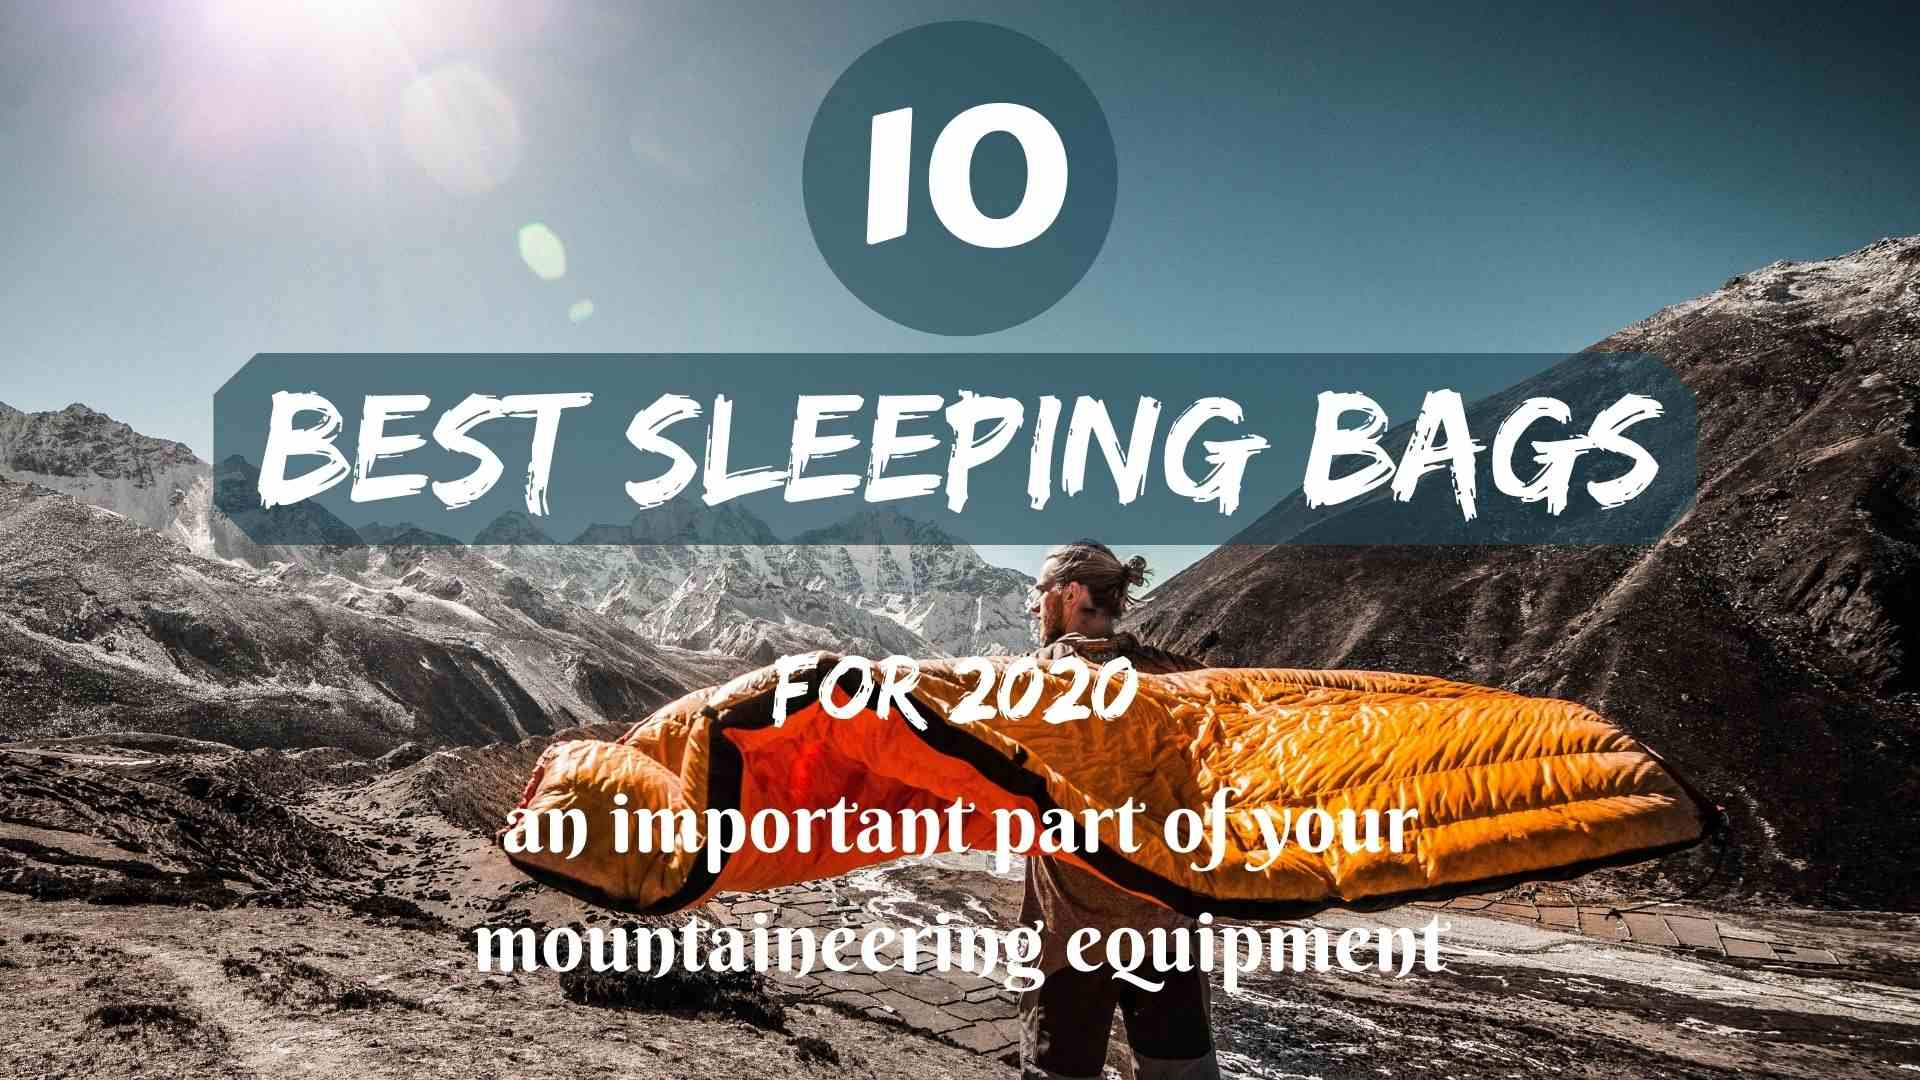 The 10 best sleeping bags for 2020- an important part of your mountain equipment